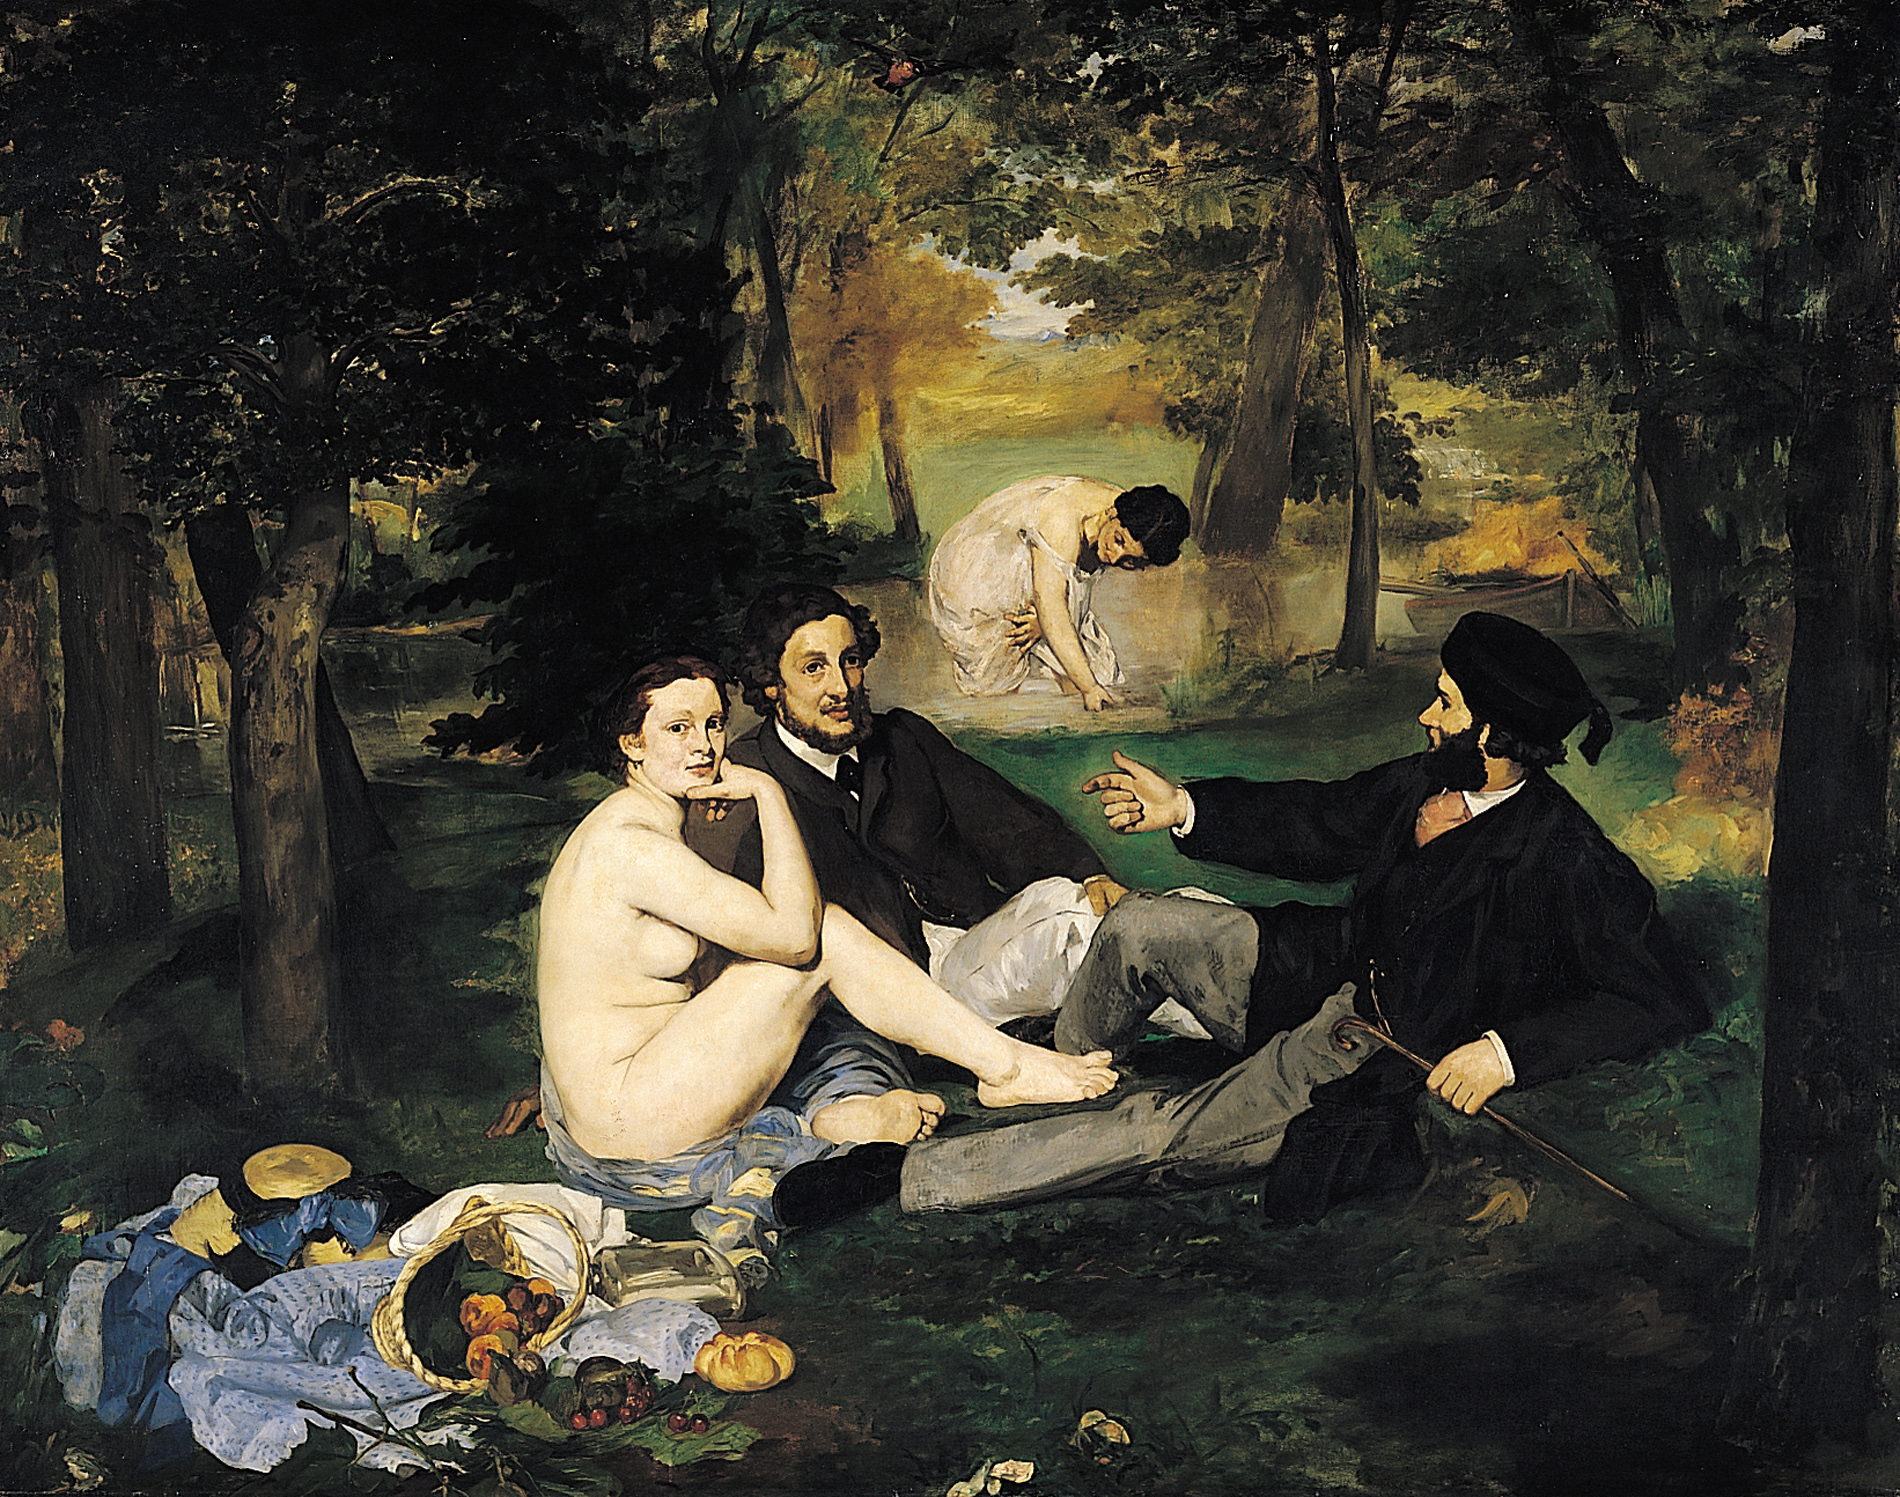 http://uploads5.wikipaintings.org/images/edouard-manet/the-luncheon-on-the-grass-1863.jpg